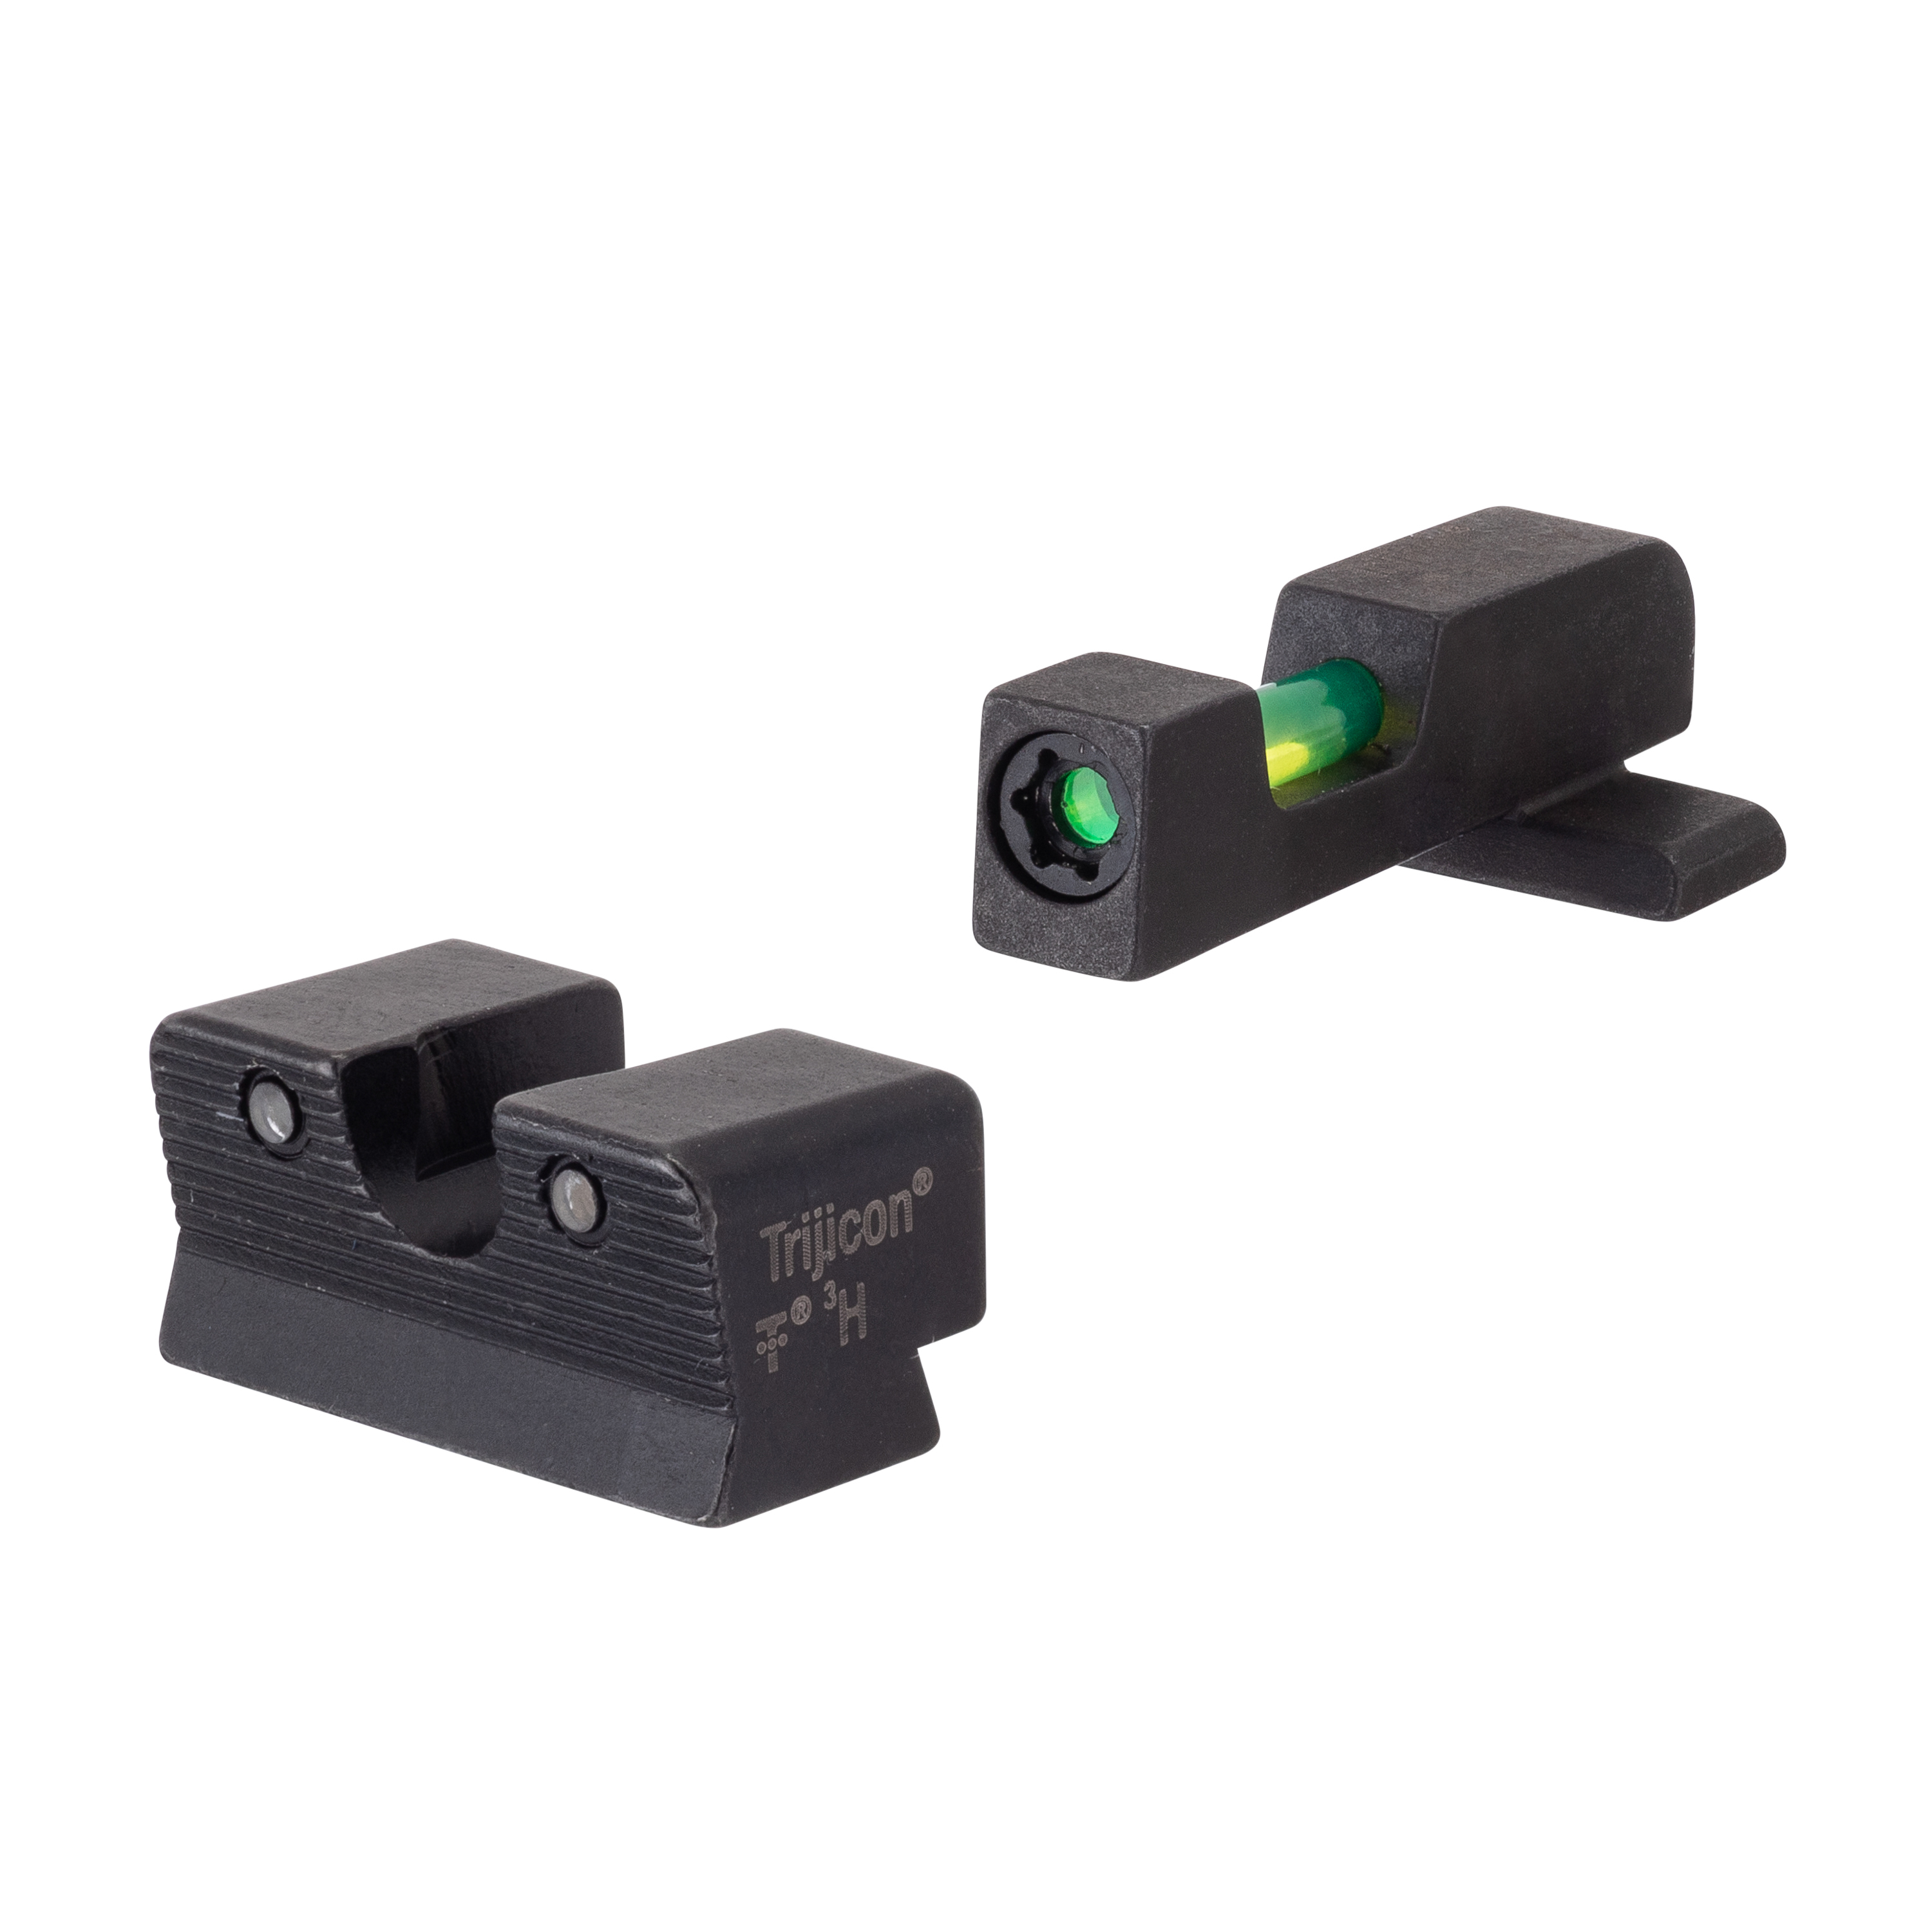 Trijicon DI™ Night Sight Set - for Sig Sauer® #6 Front/#8 Rear